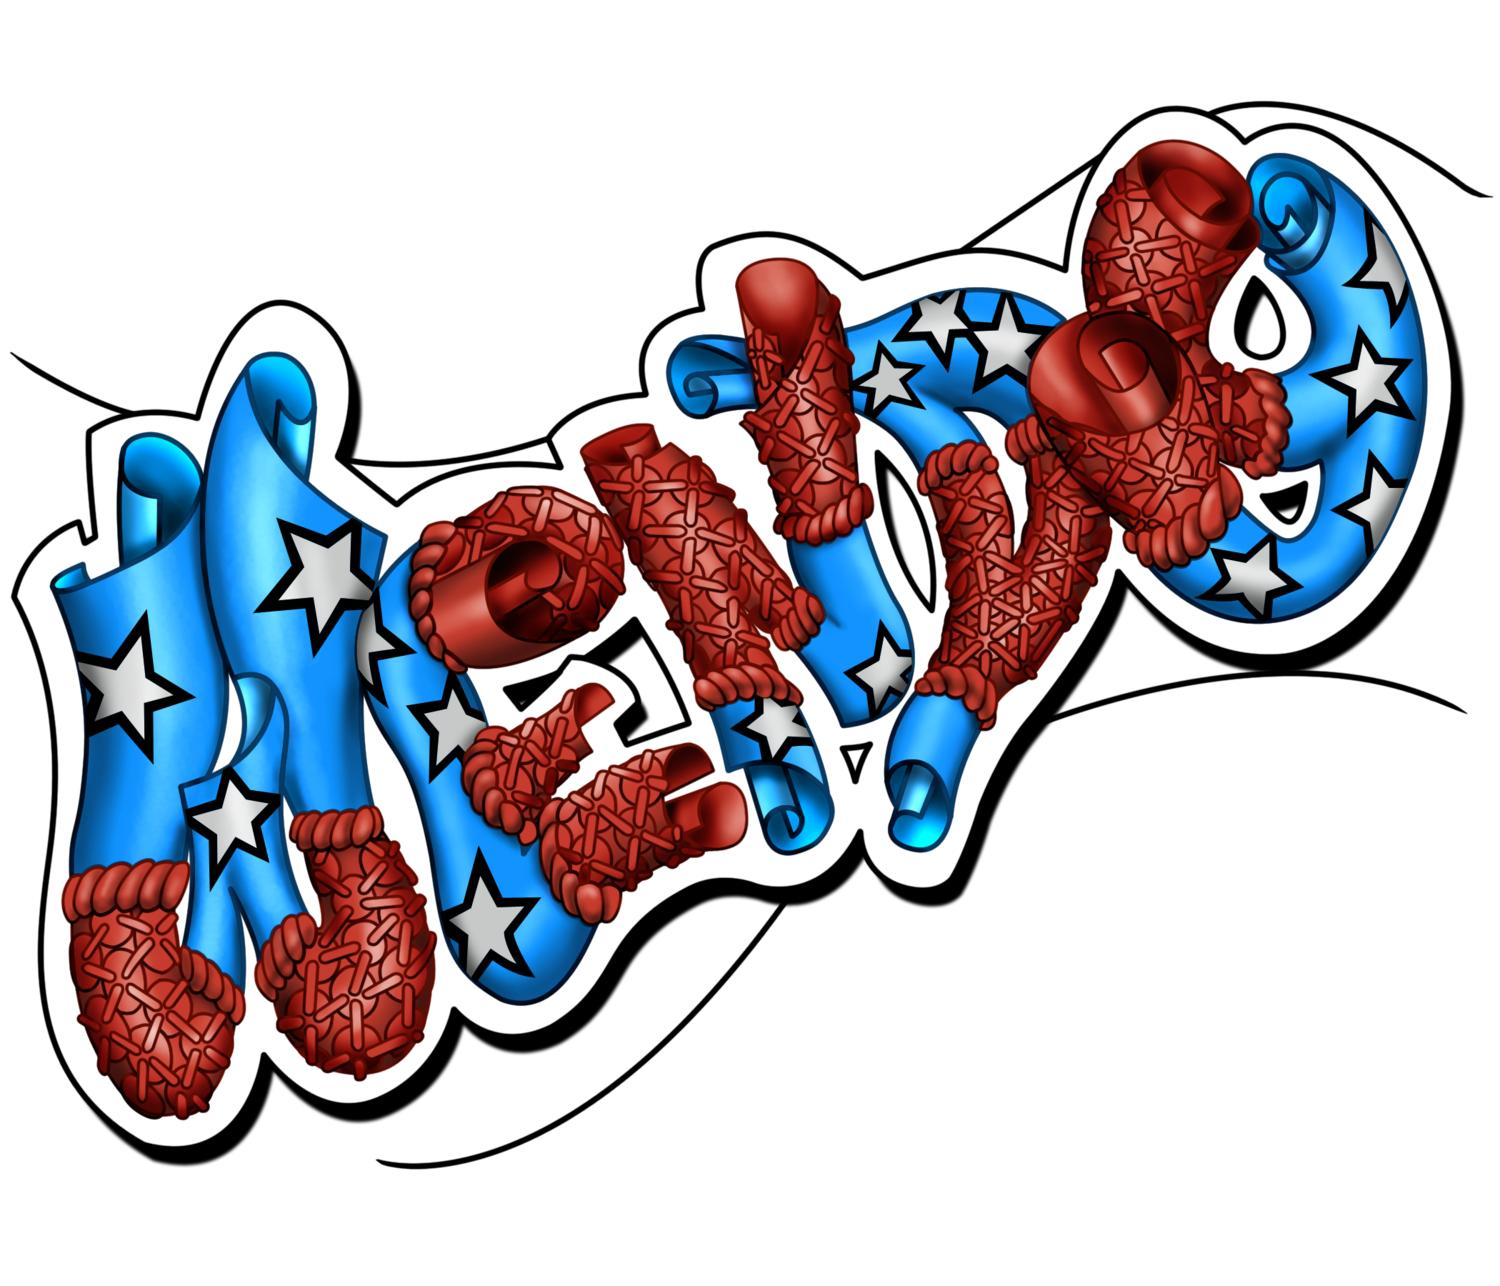 Name Graffiti Design by magneticcanvas - 36645